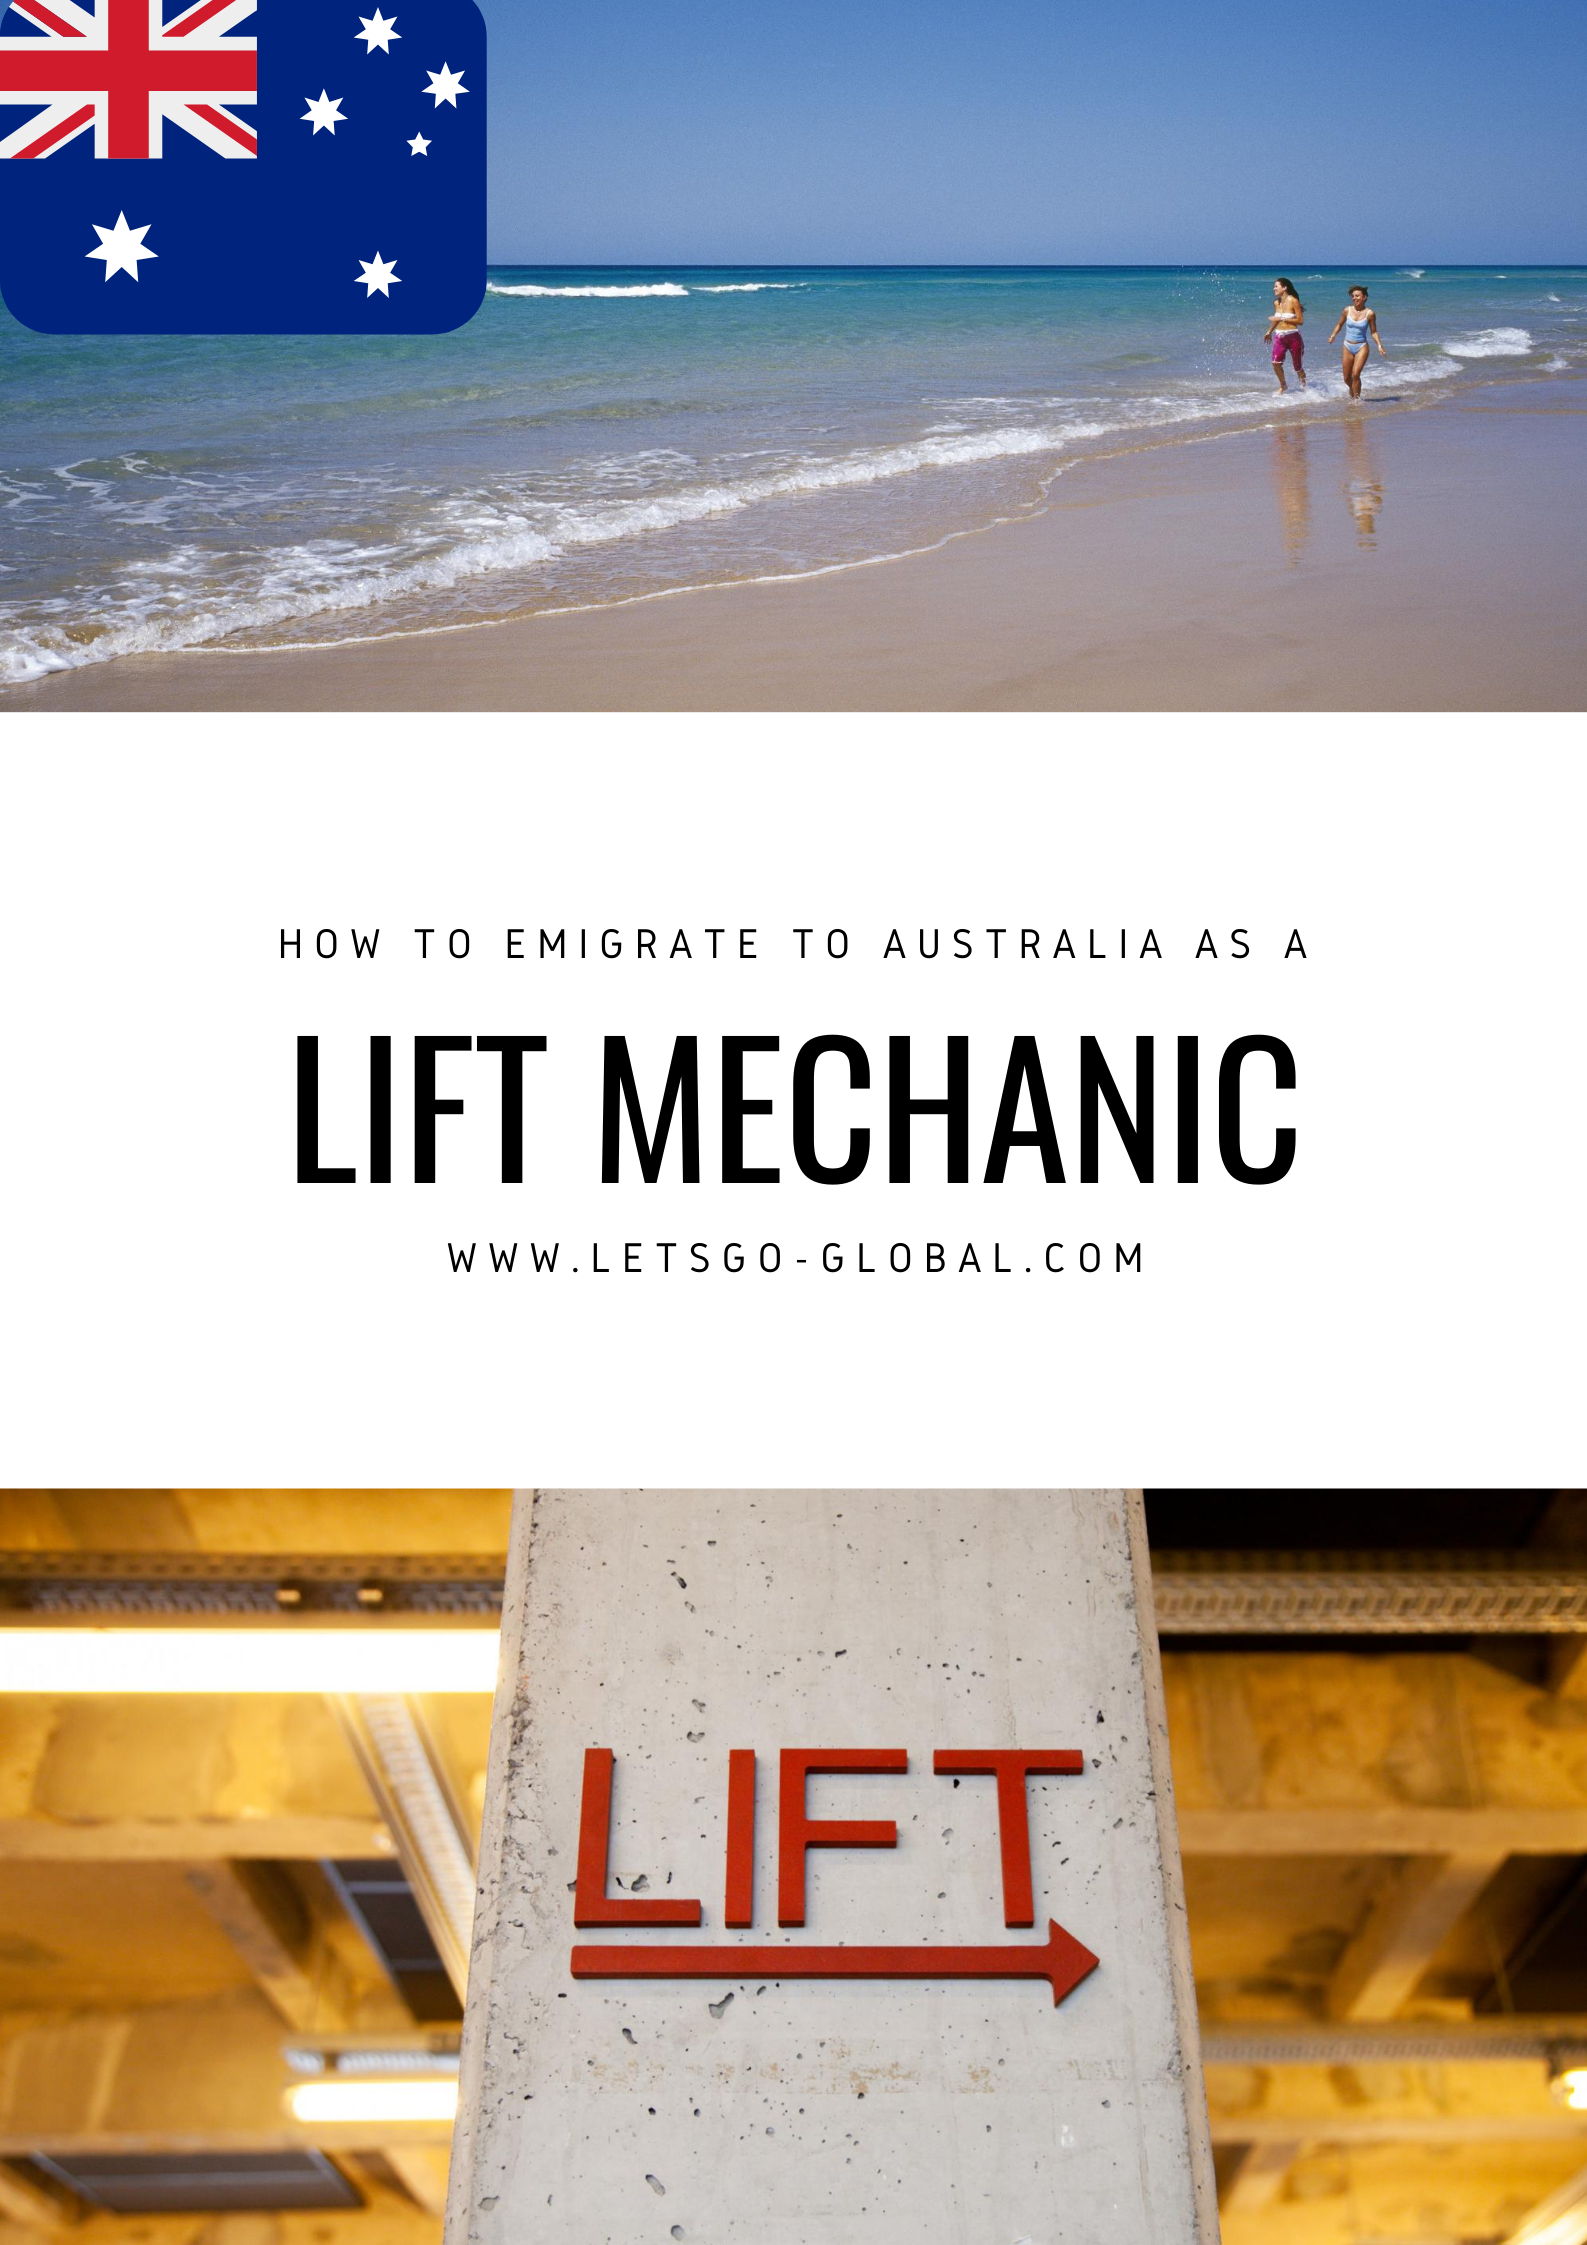 Migrate to Australia as a Lift Mechanic